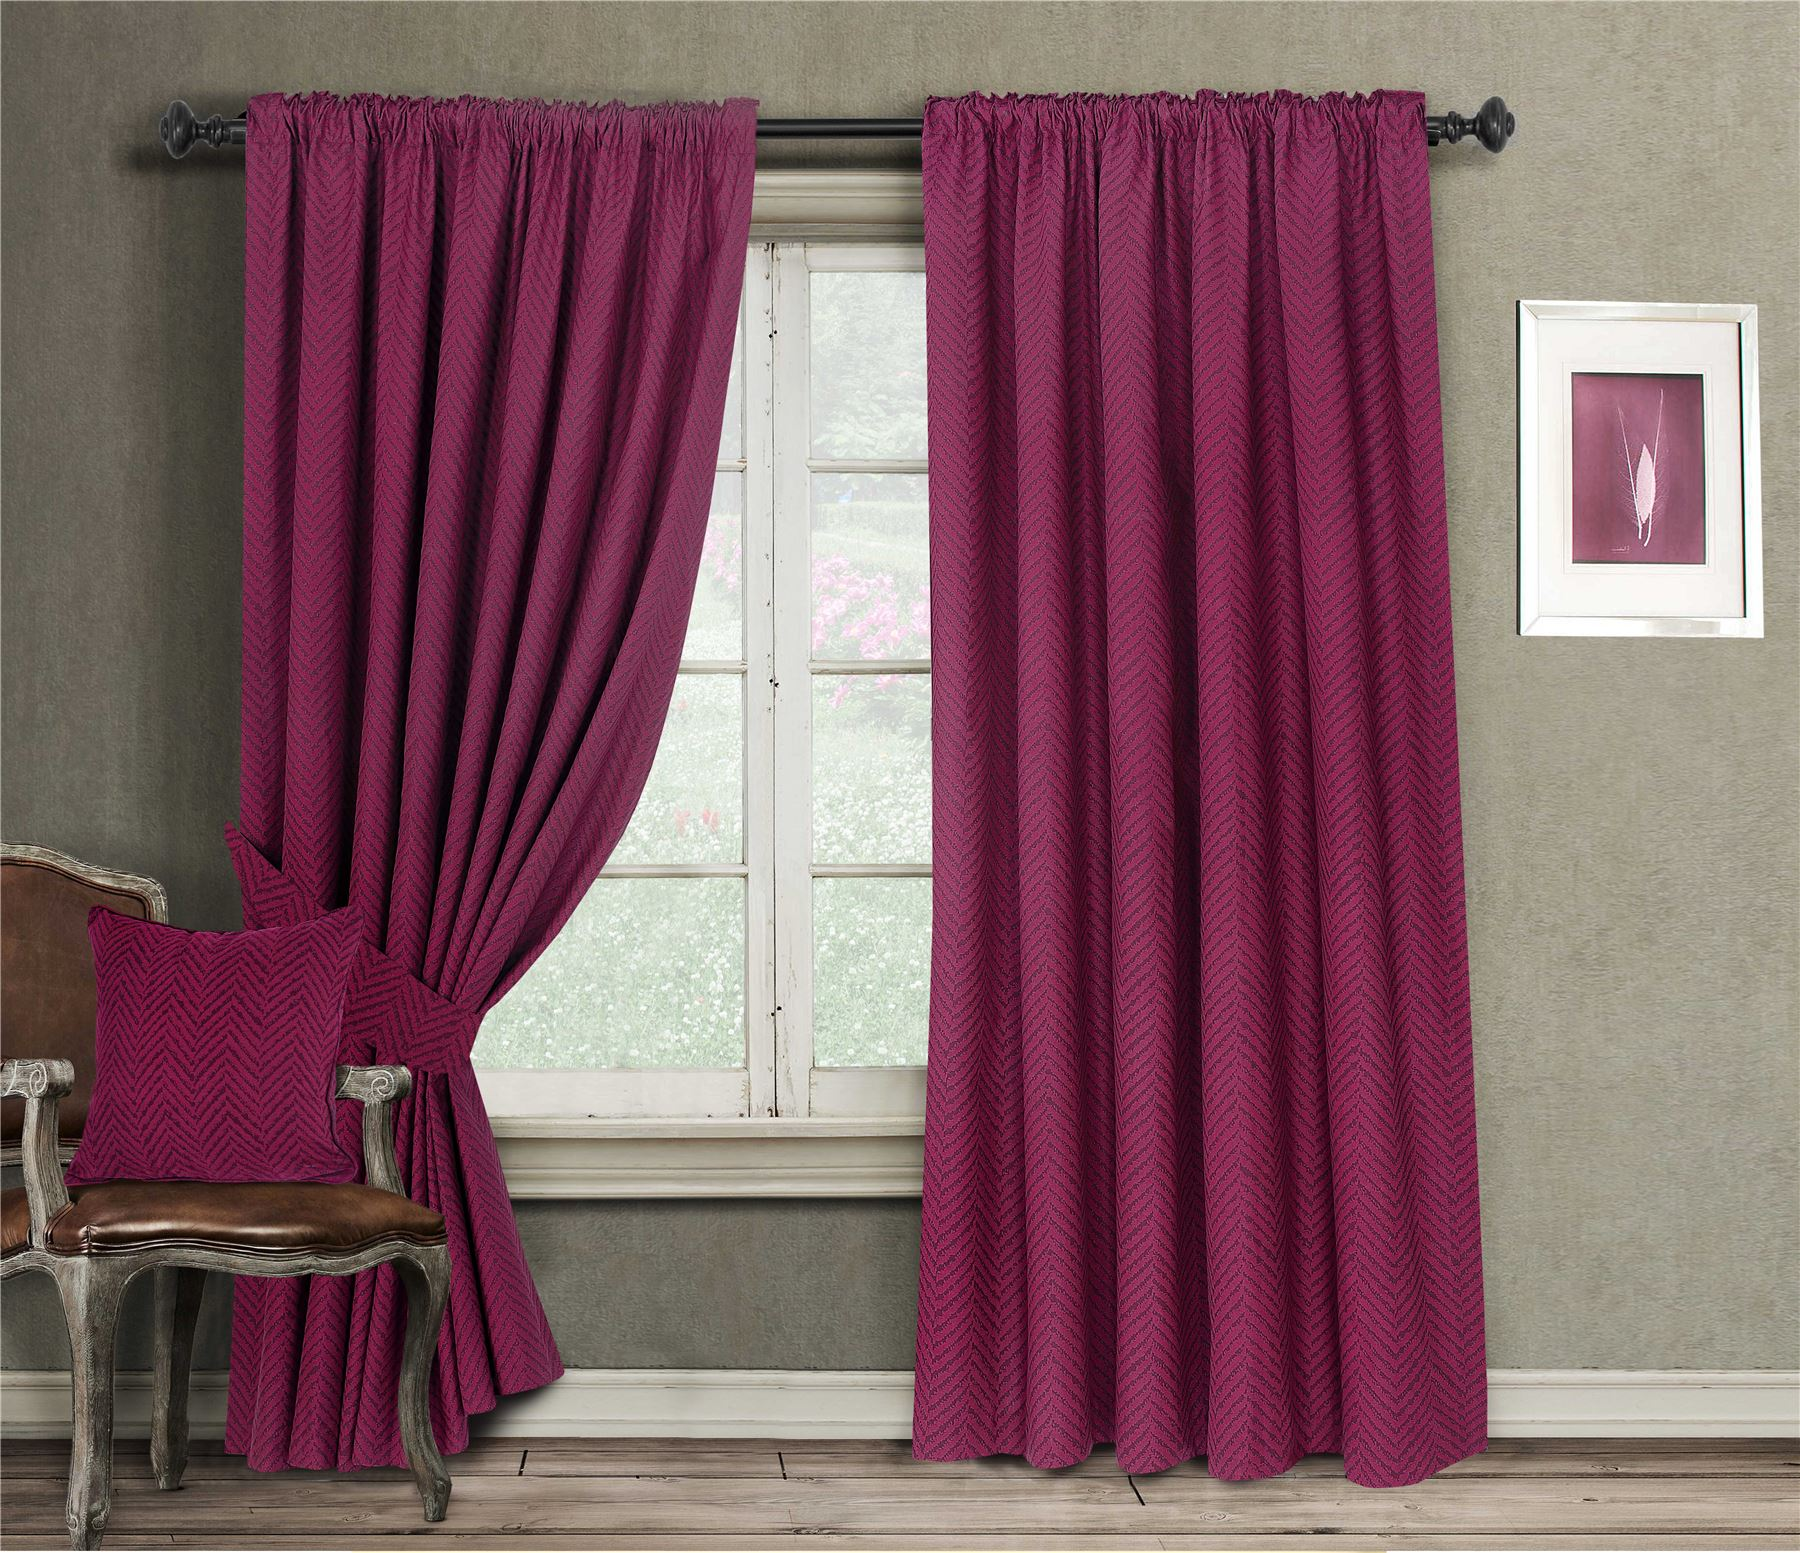 Menaal-Pair-of-100-Cotton-Curtains-Fully-Lined-Solar-Thermal-Blocking-Lining